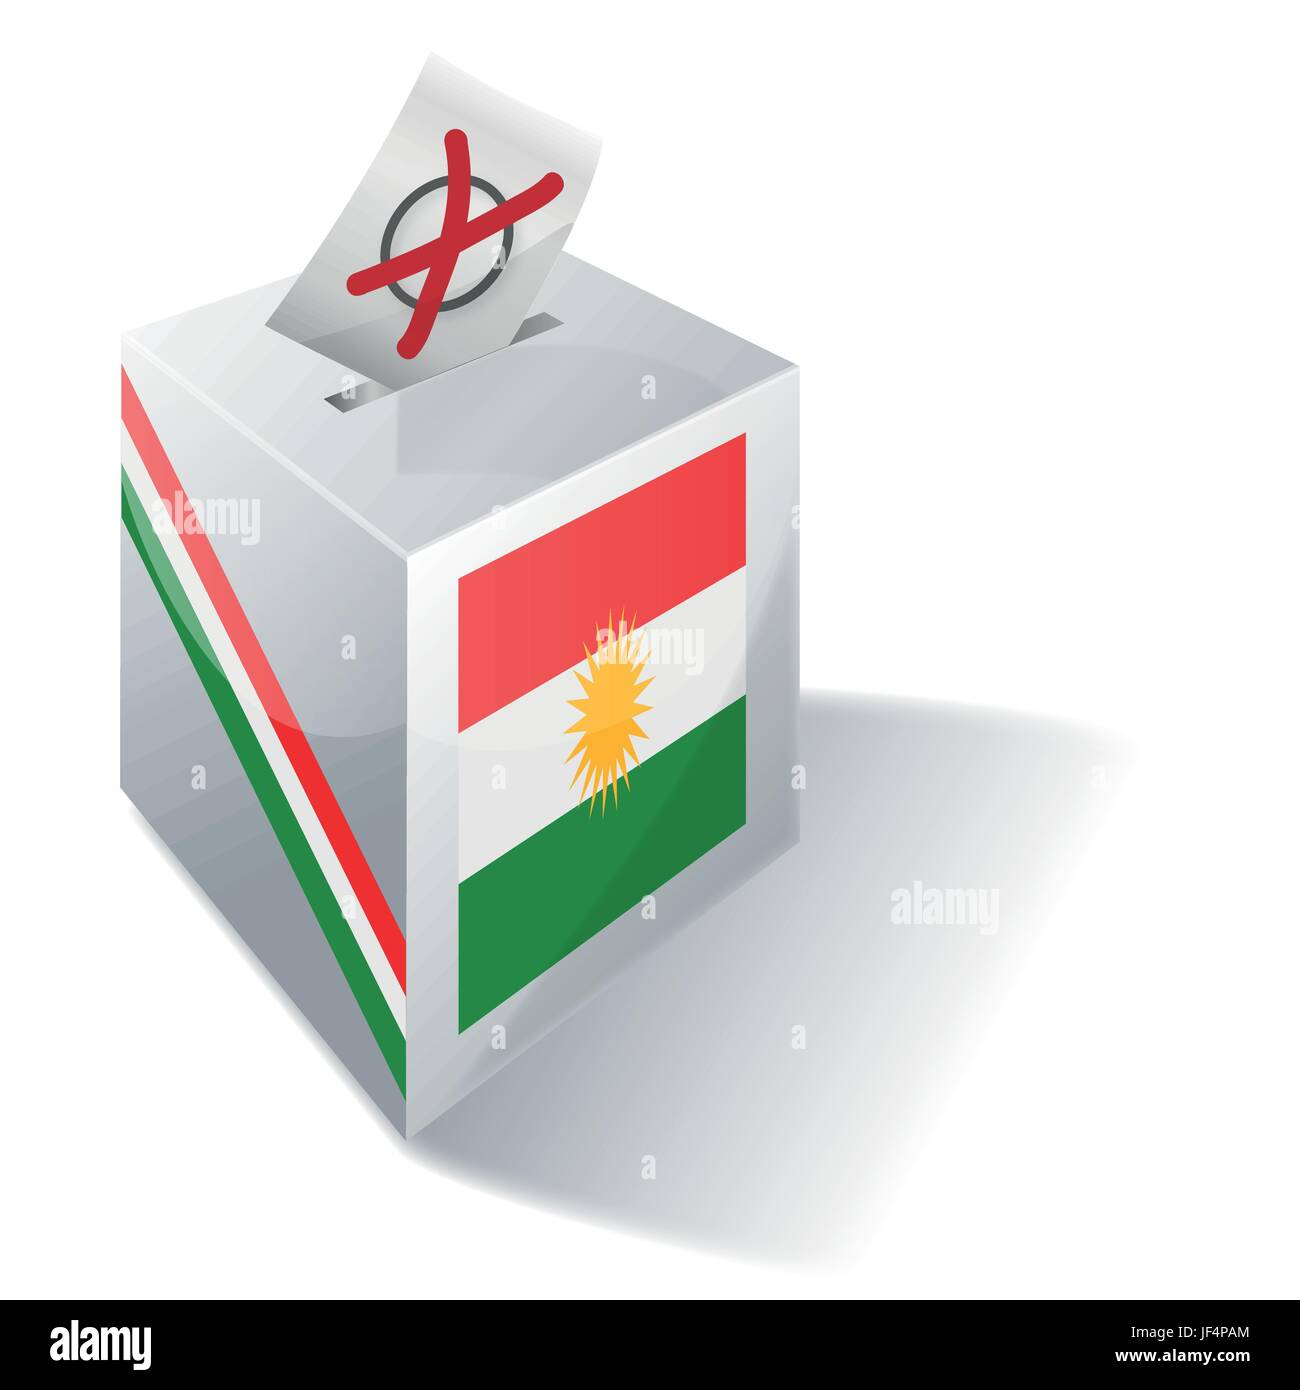 choose, elections, kurdish, social, cross, freedom, liberty, urns, flag, vote, - Stock Image